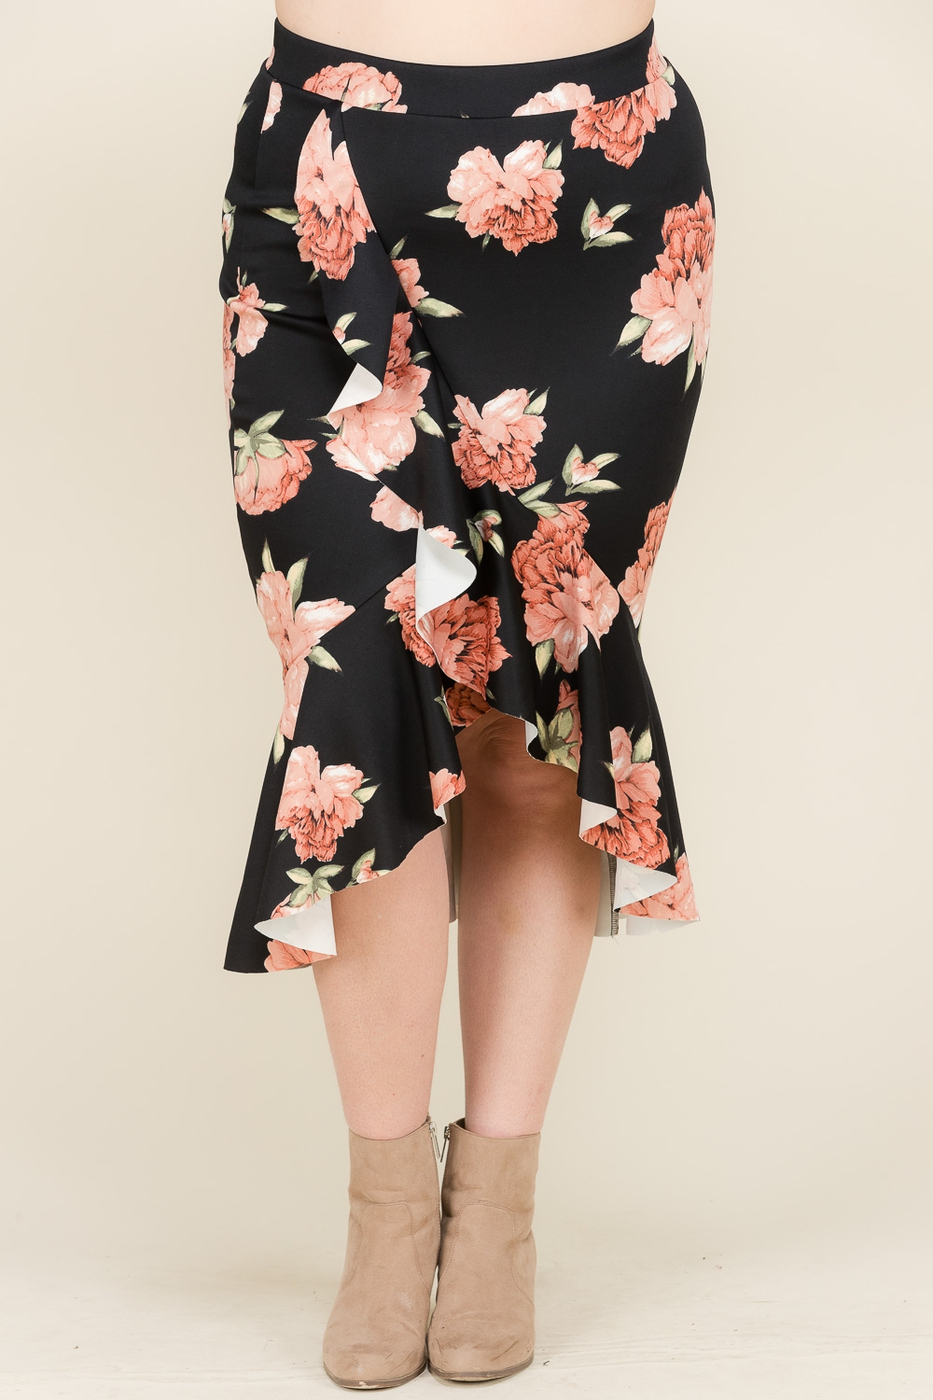 FLORAL RUFFLED HI-LOW SKIRT - orangeshine.com